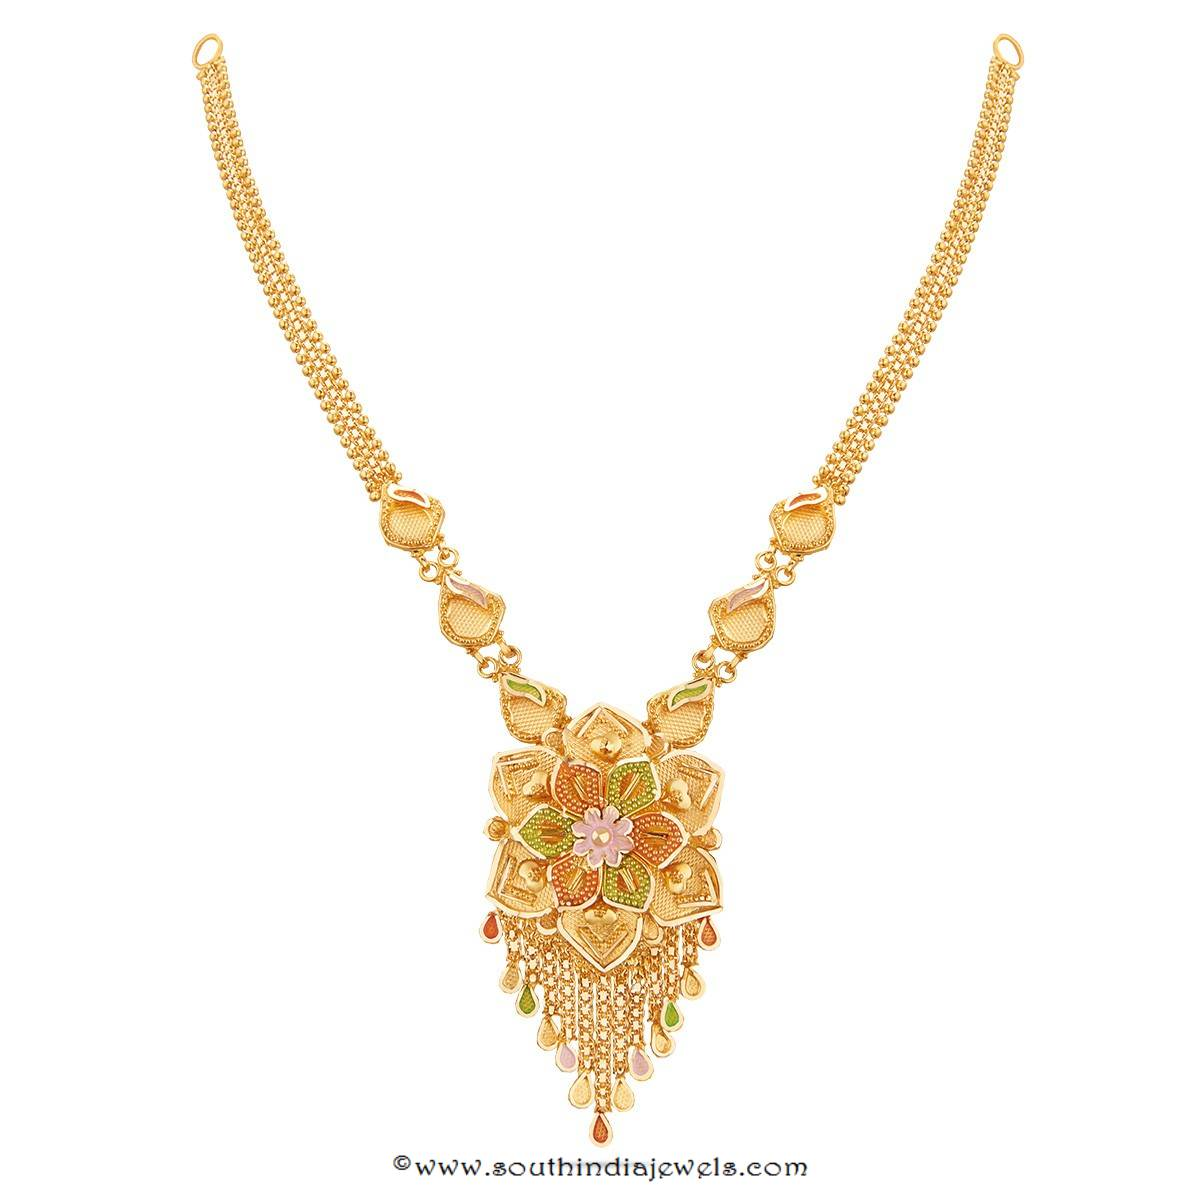 22k gold simple gold necklace design for inquiries please contact the - 22k Gold Floral Necklace Design From Thangamayil South